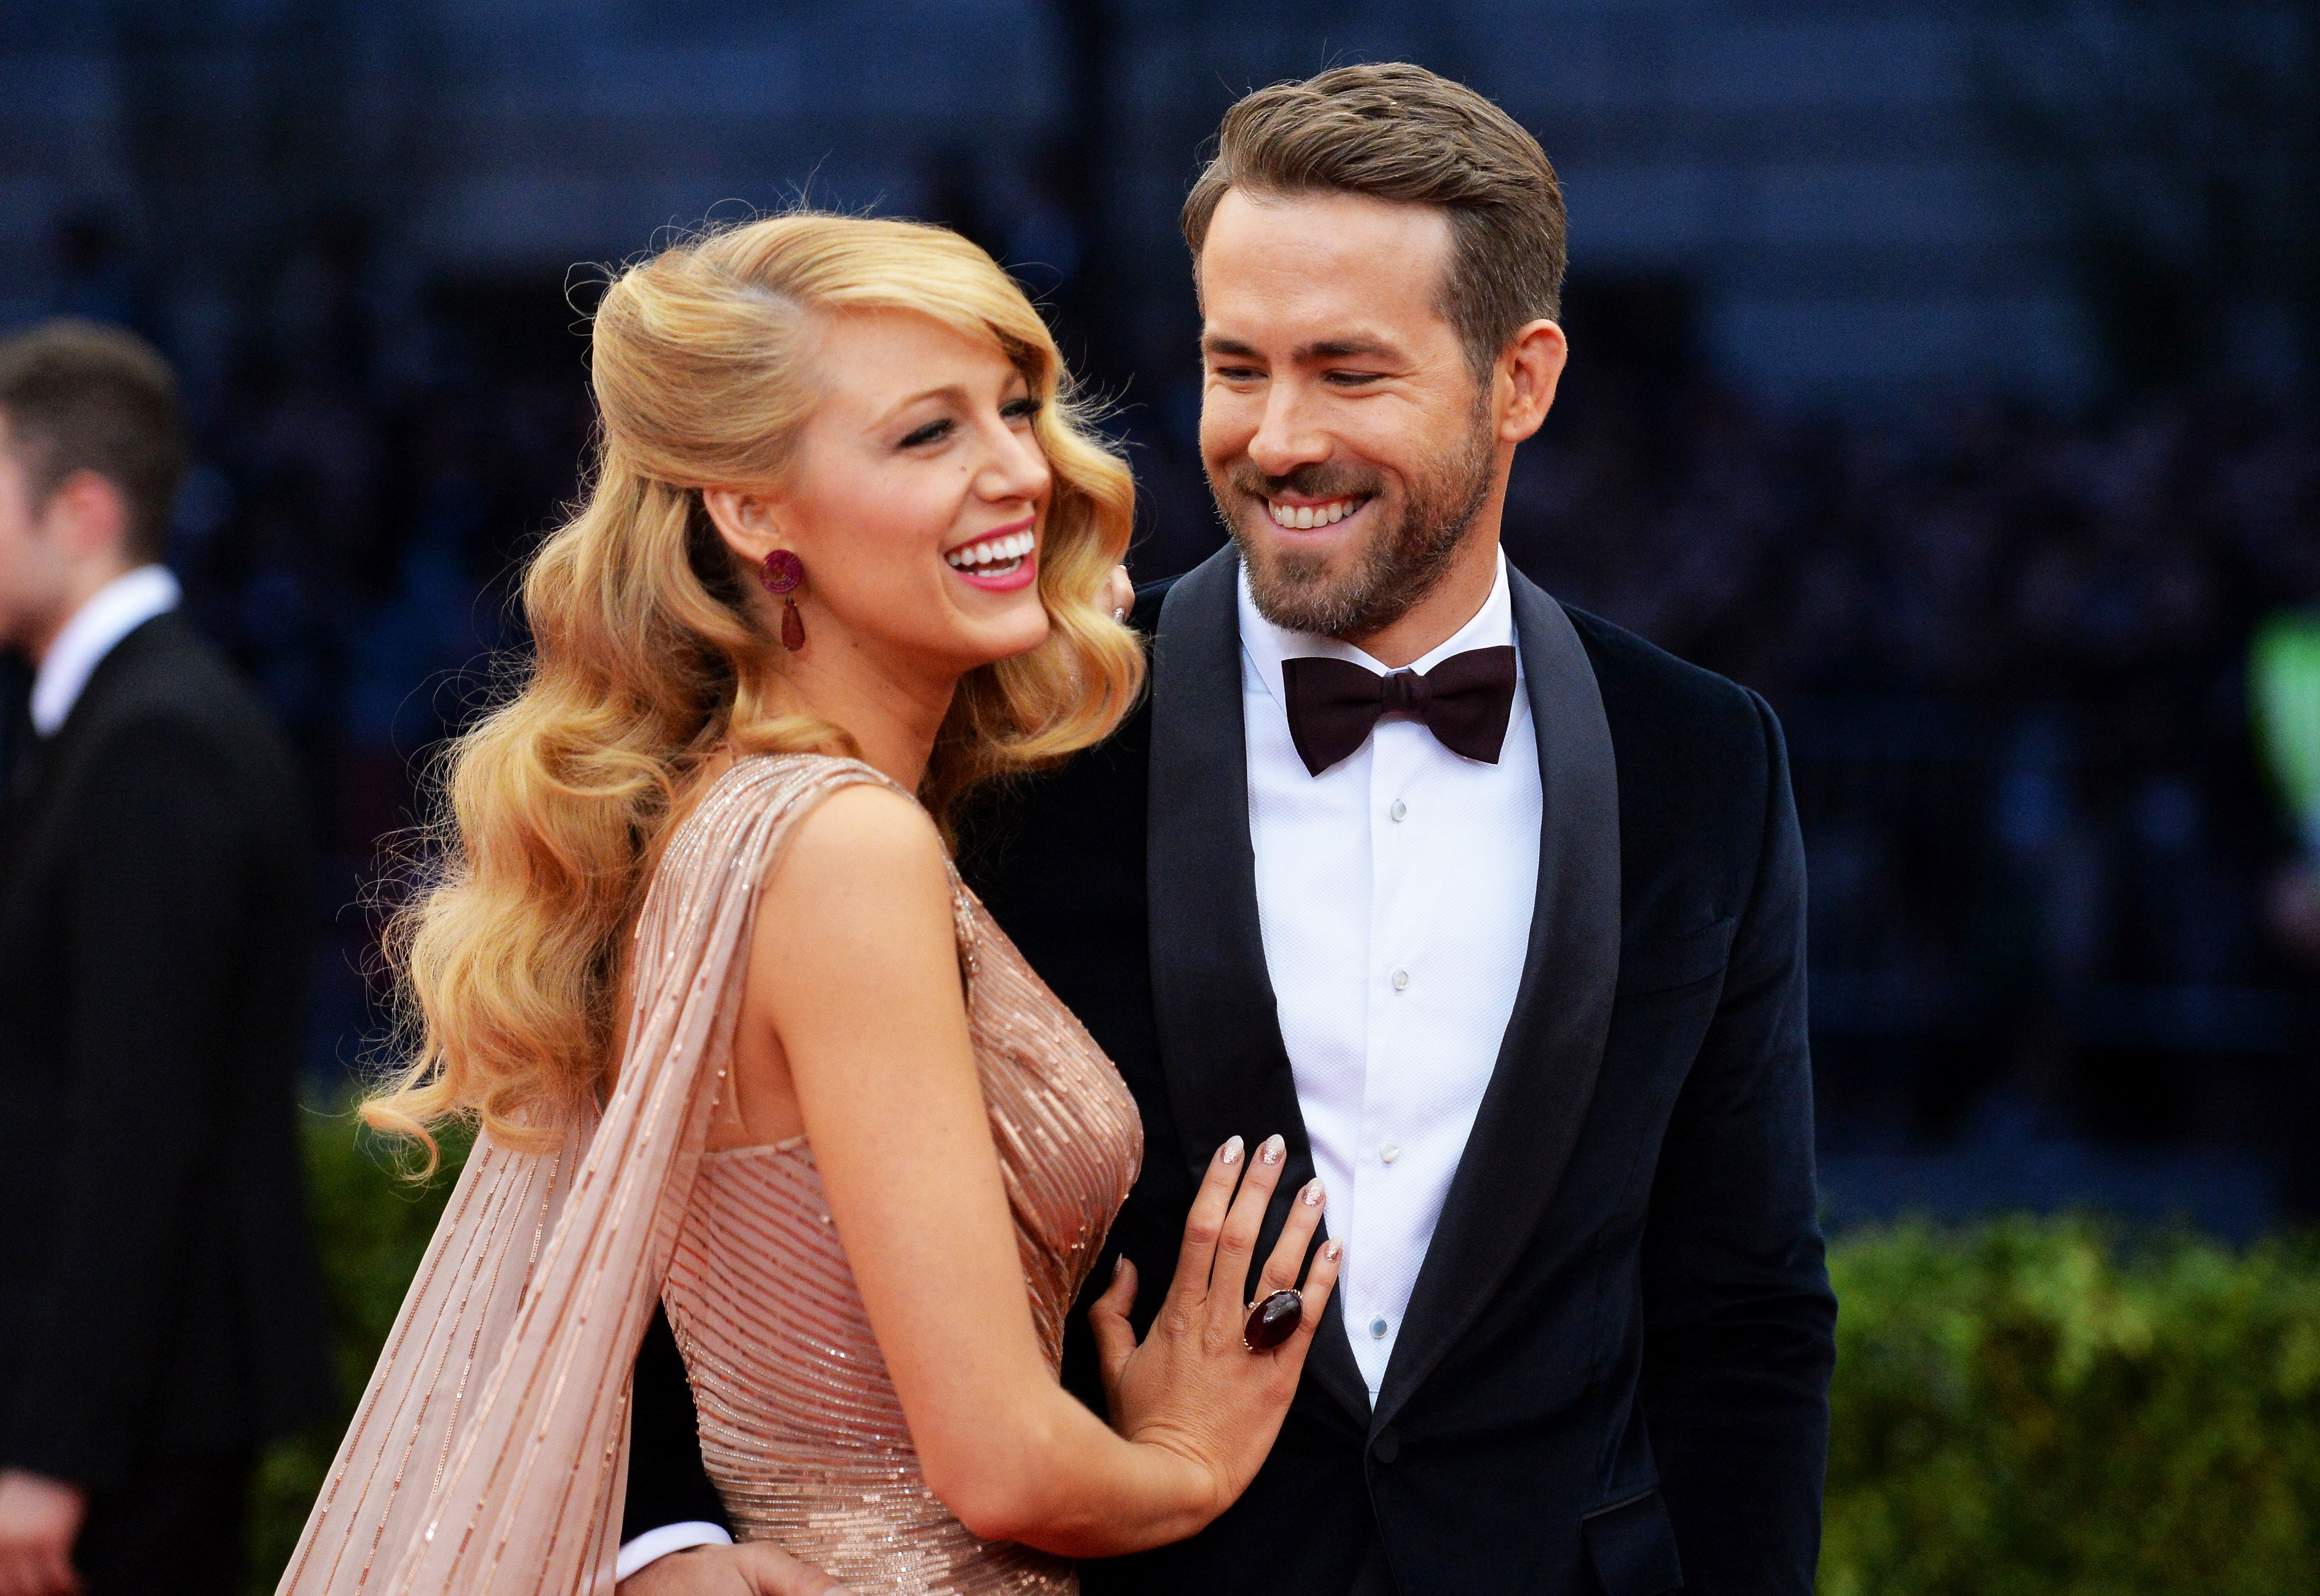 Blake Lively And Ryan Reynolds's Wedding Shadow Banned On Pinterest Because Of Location